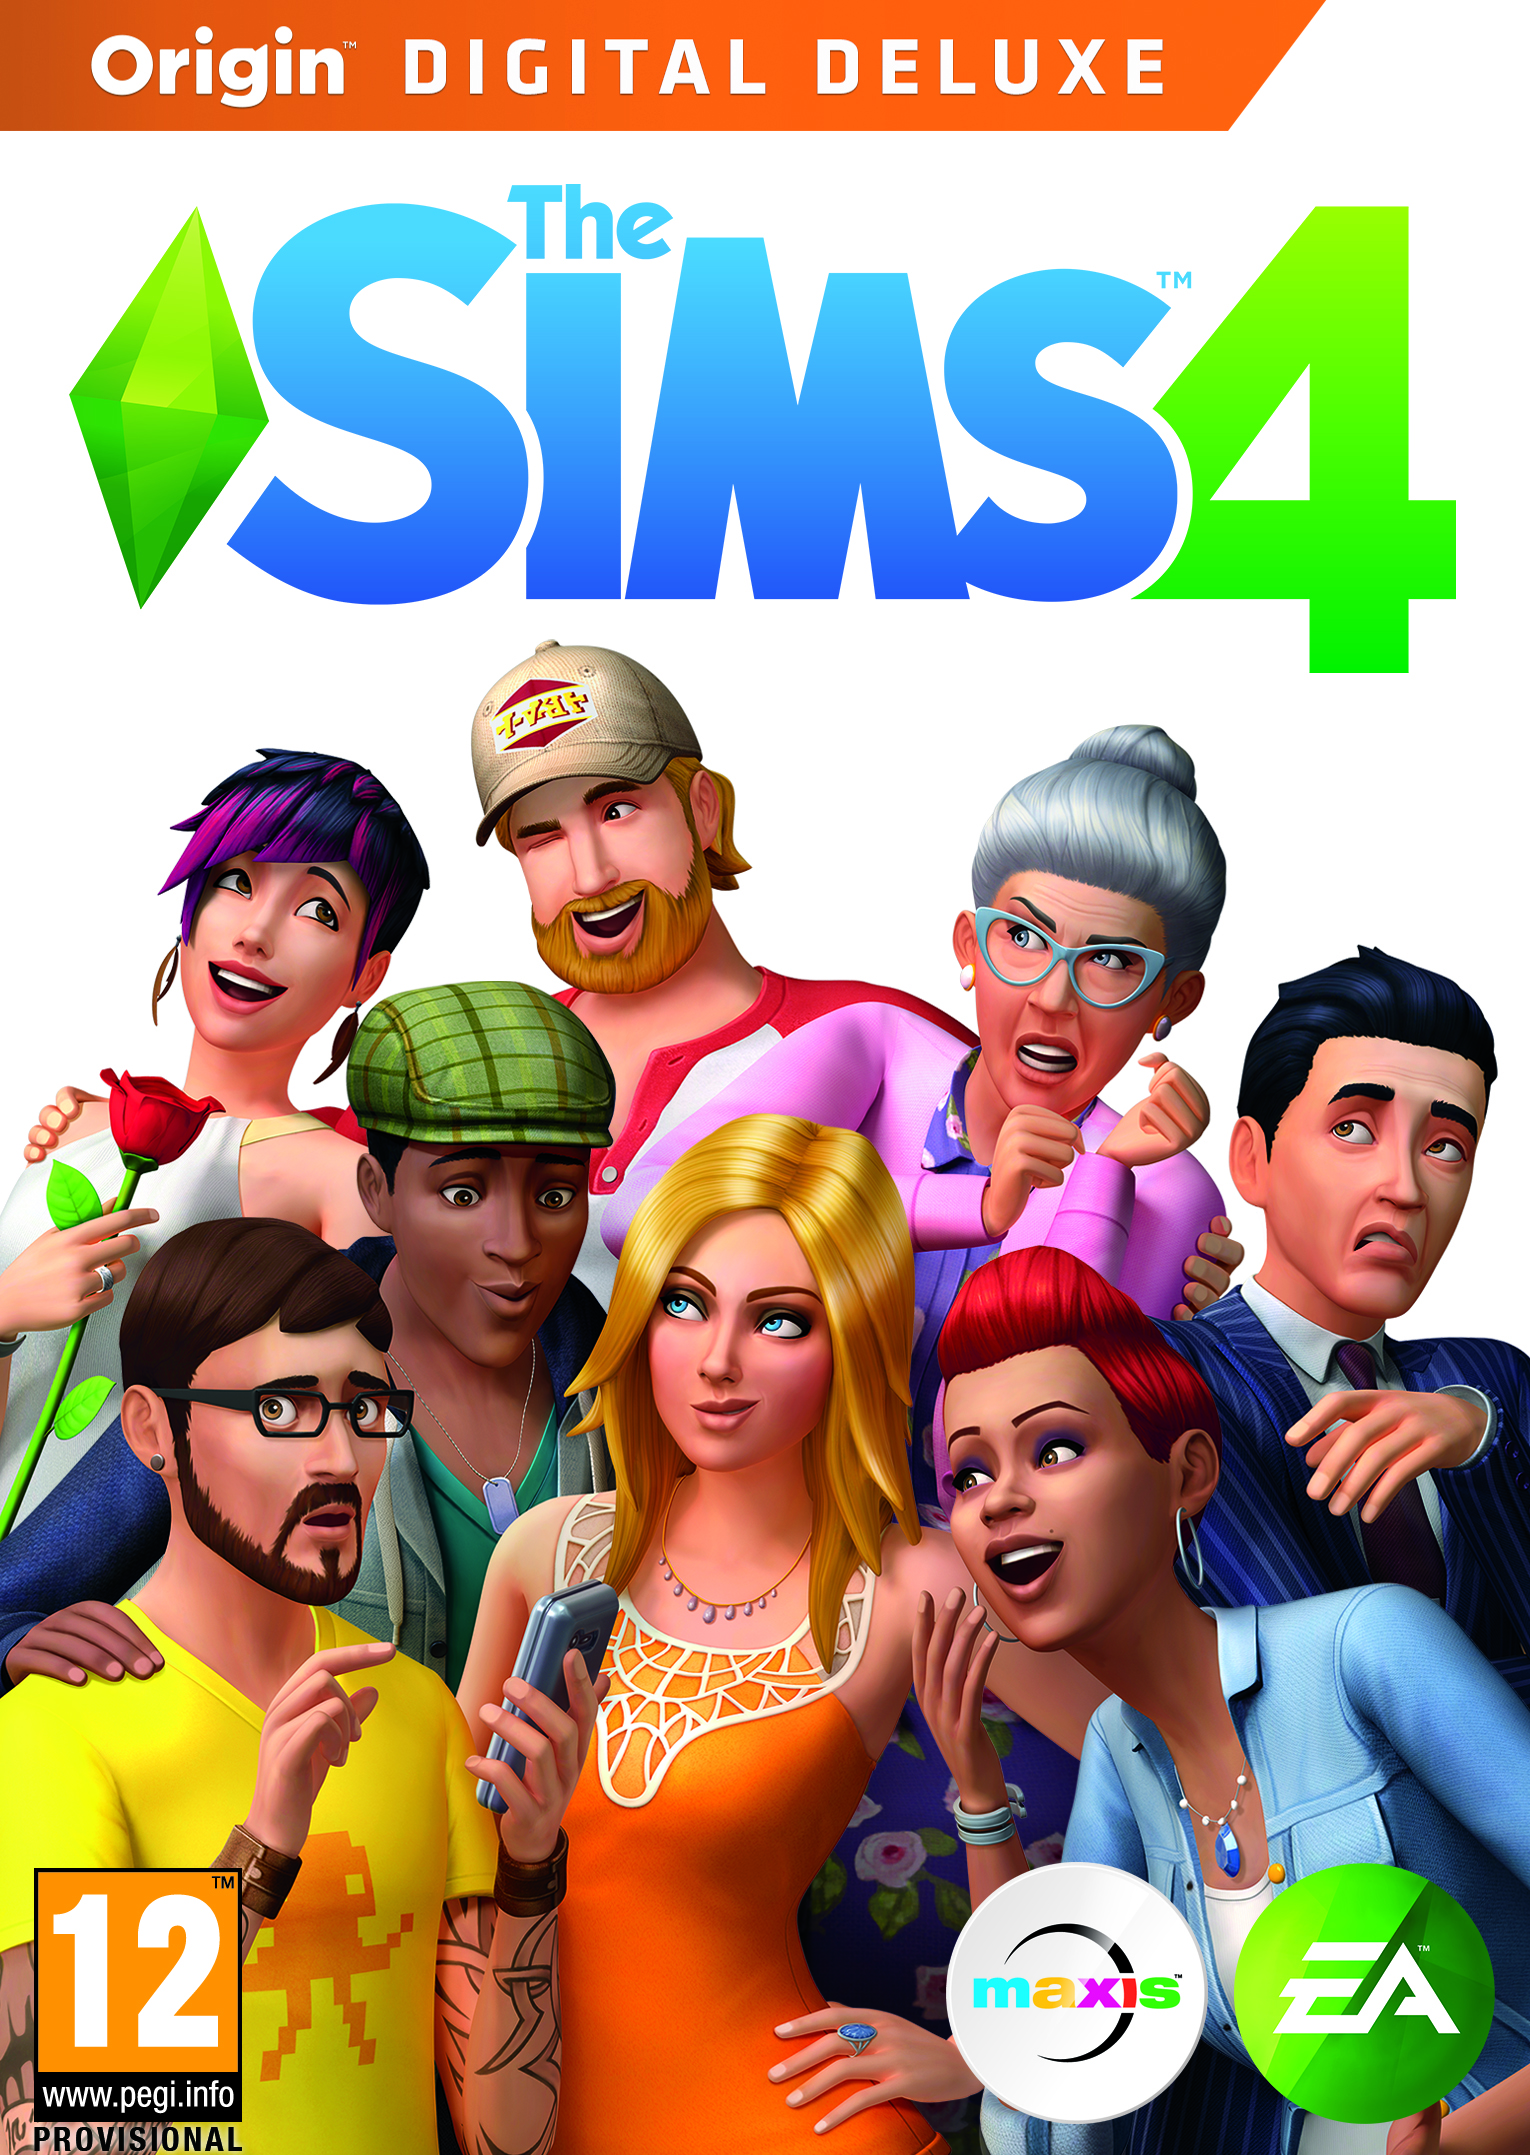 jogos the sims 4 ea games electronic arts review tech blog